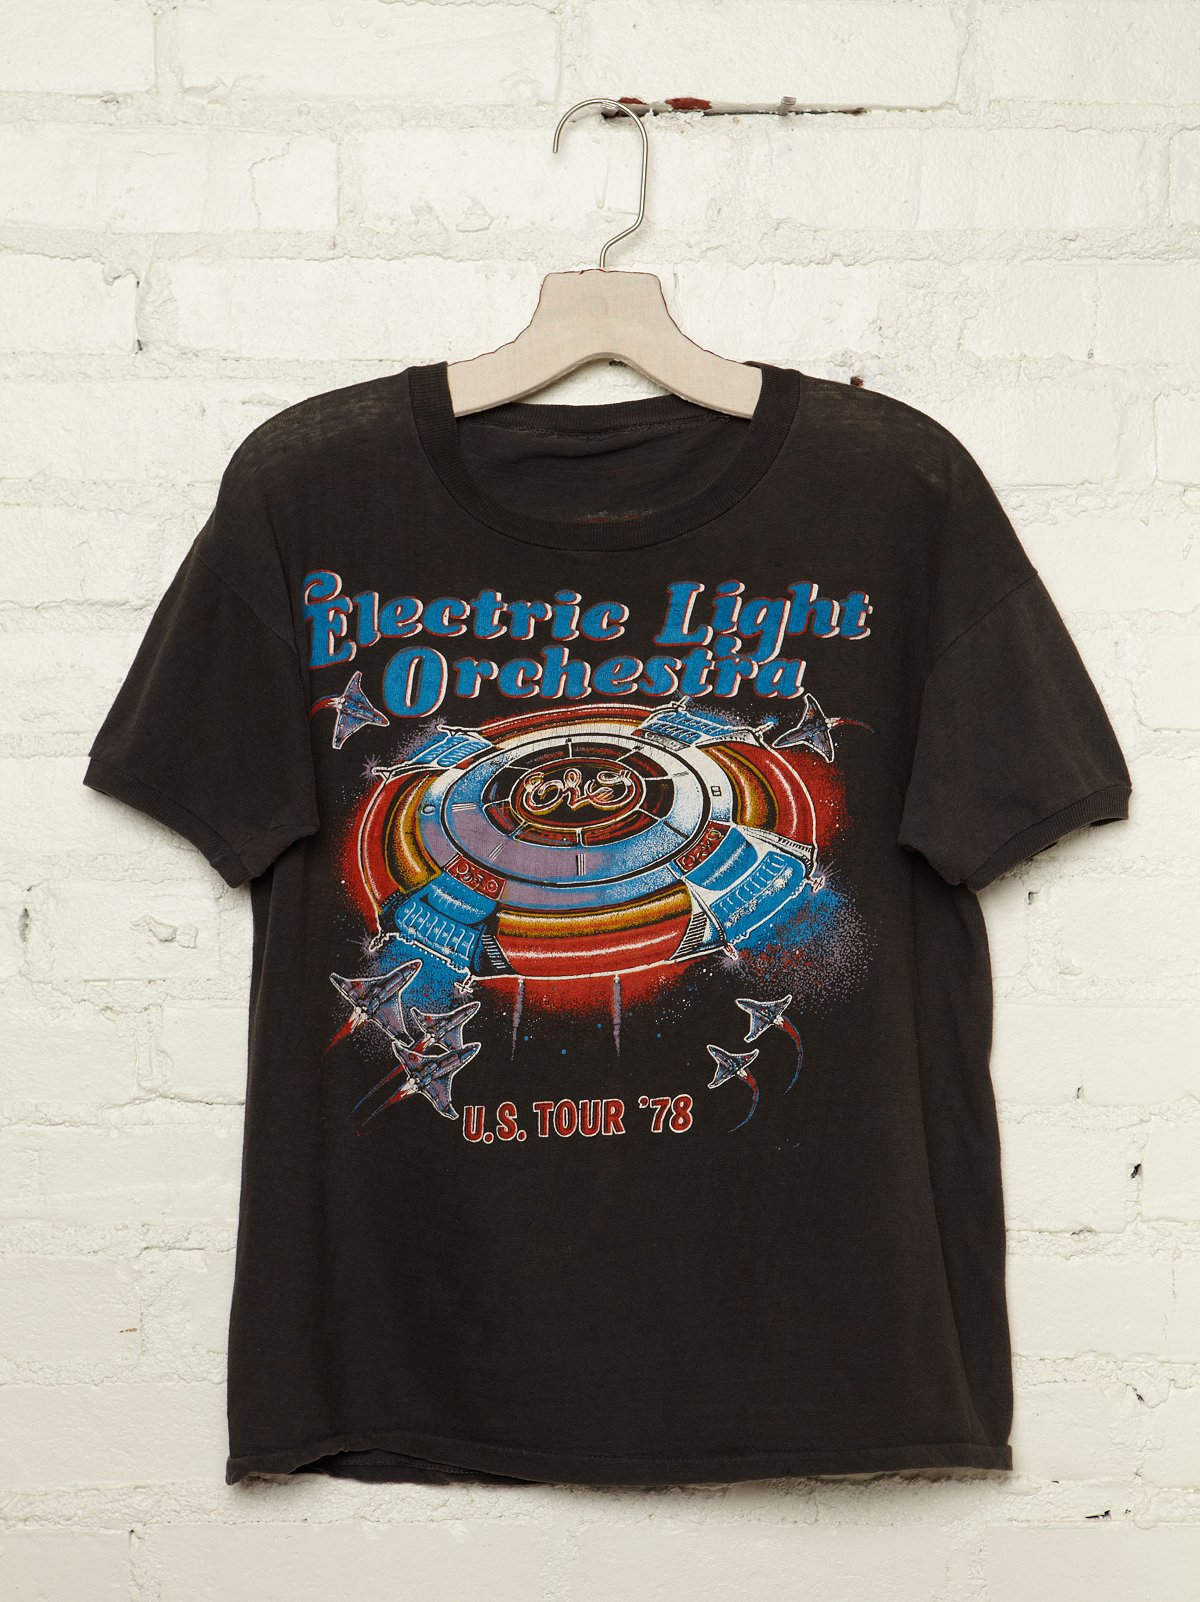 Vintage Electric Light Orchestra 1978 Tour Tee